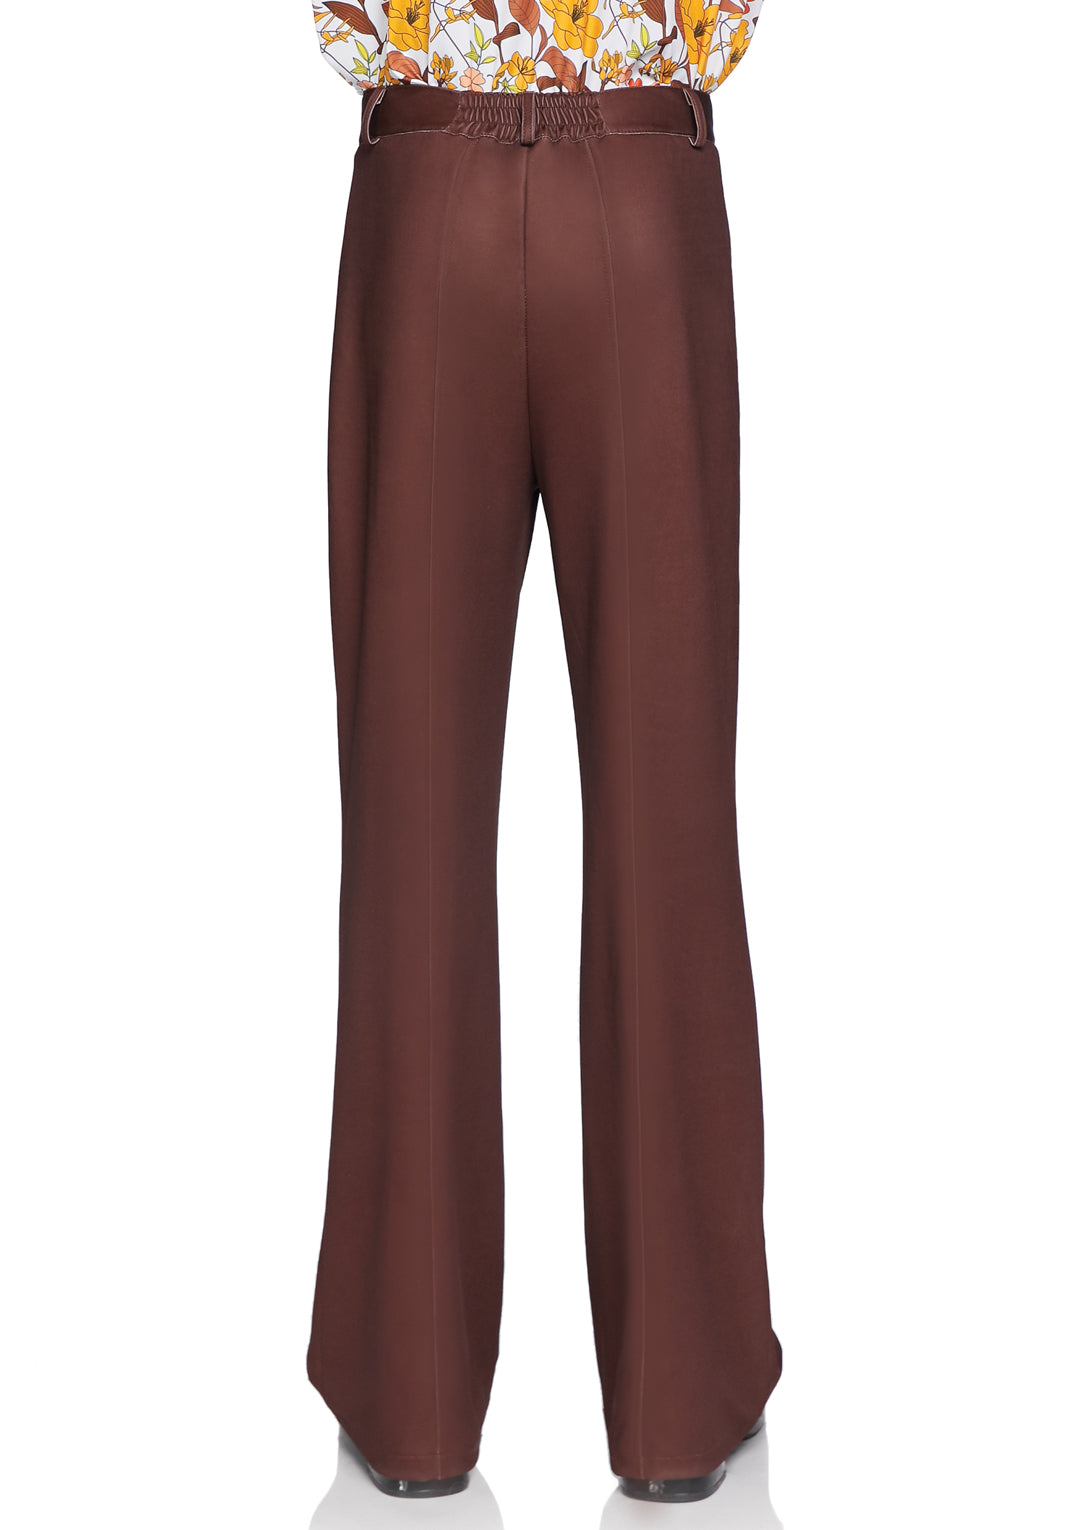 Men's Brown Bell Bottom Pants